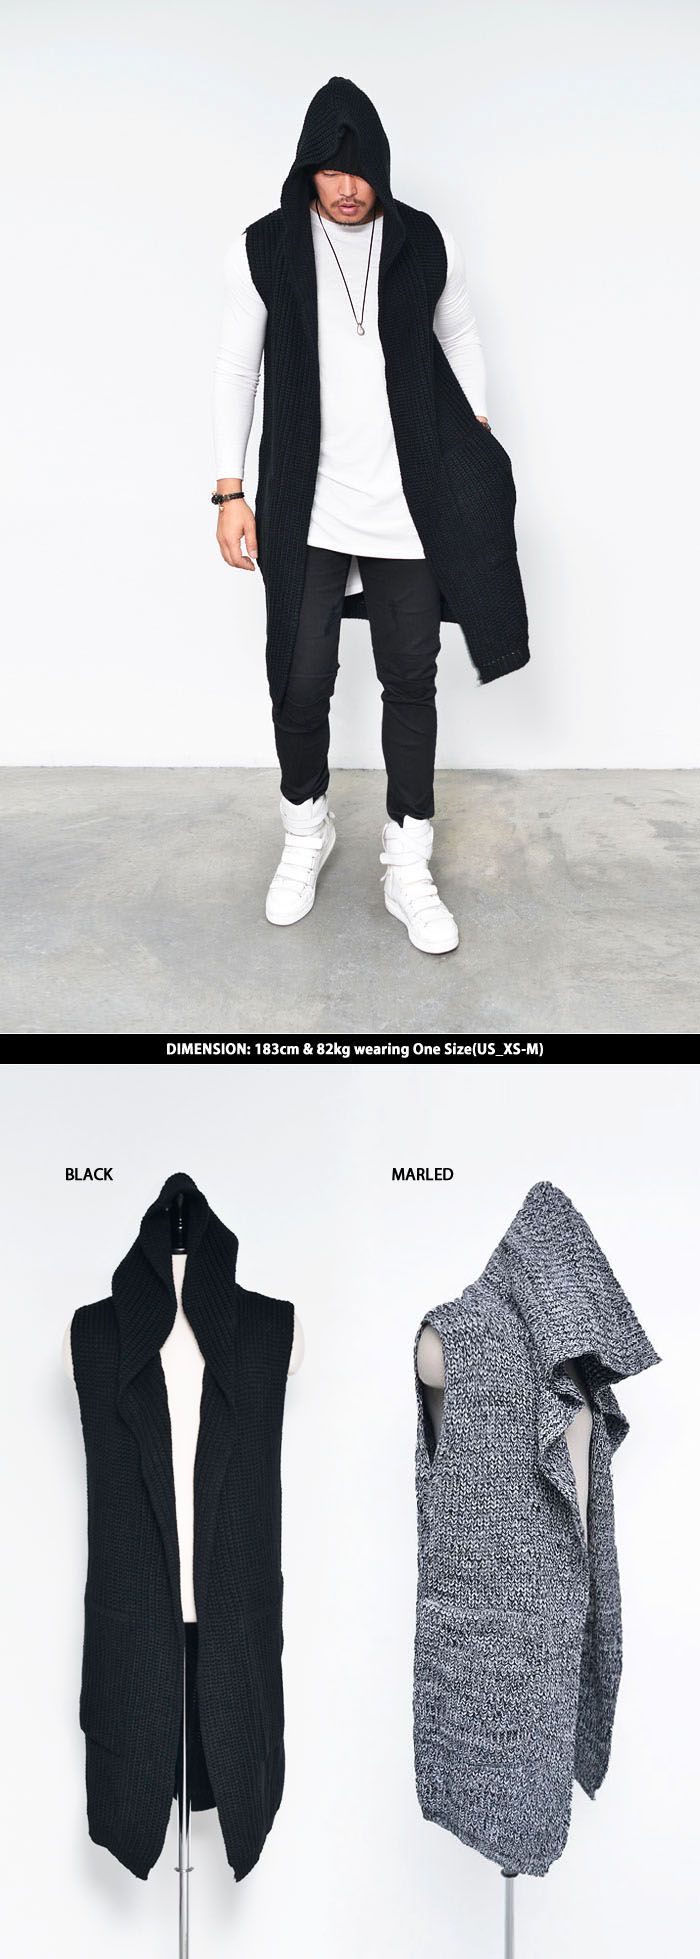 Tops :: Hoodies :: Chunky Knit Hooded Long Sleeveless Cardigan-Vest 109 - Mens Fashion Clothing For An Attractive Guy Look